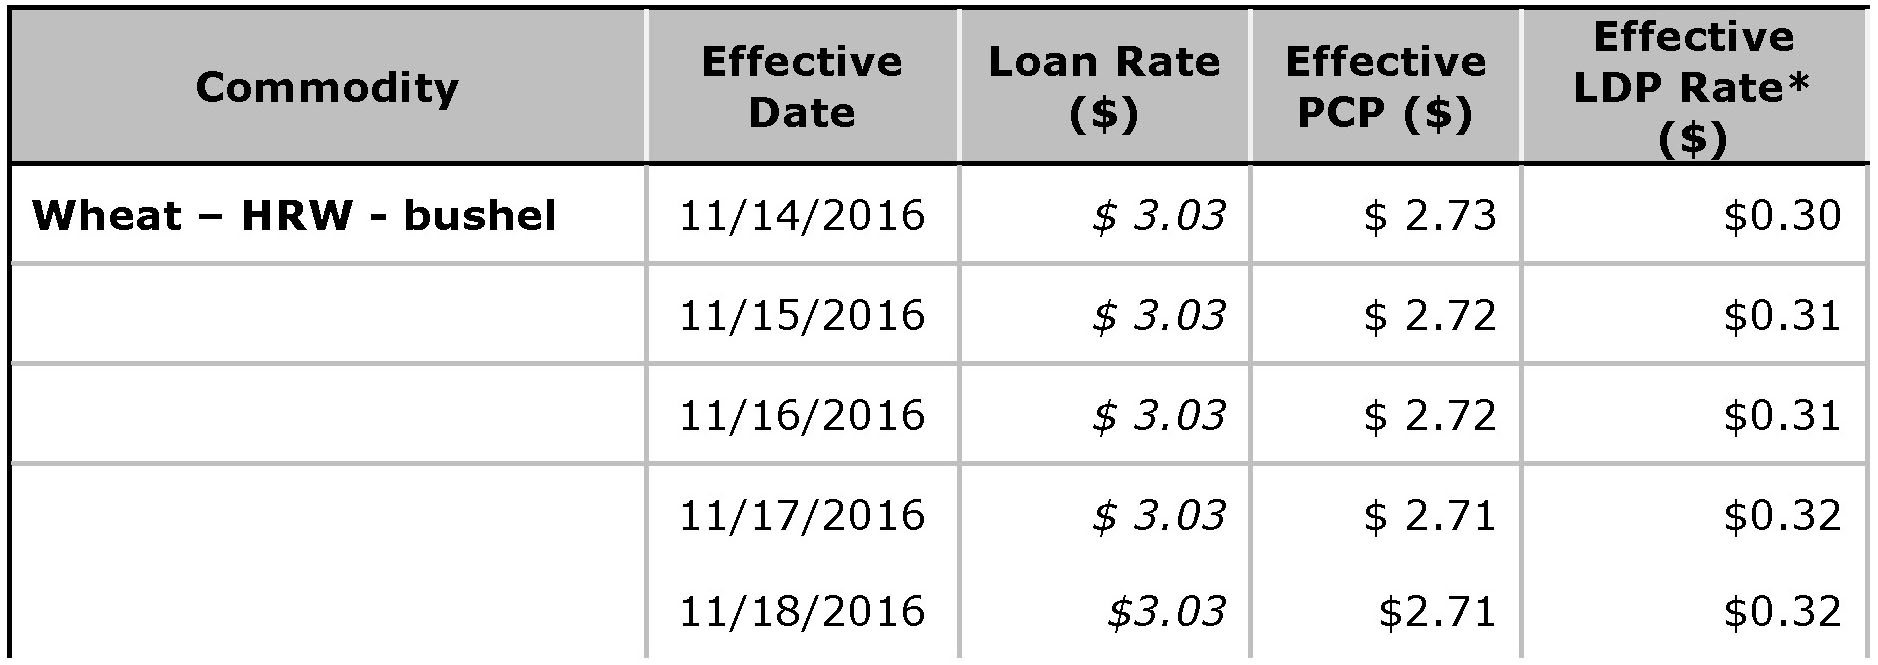 USDA Loan Deficiency Payment - November 18, 2016 - wheat